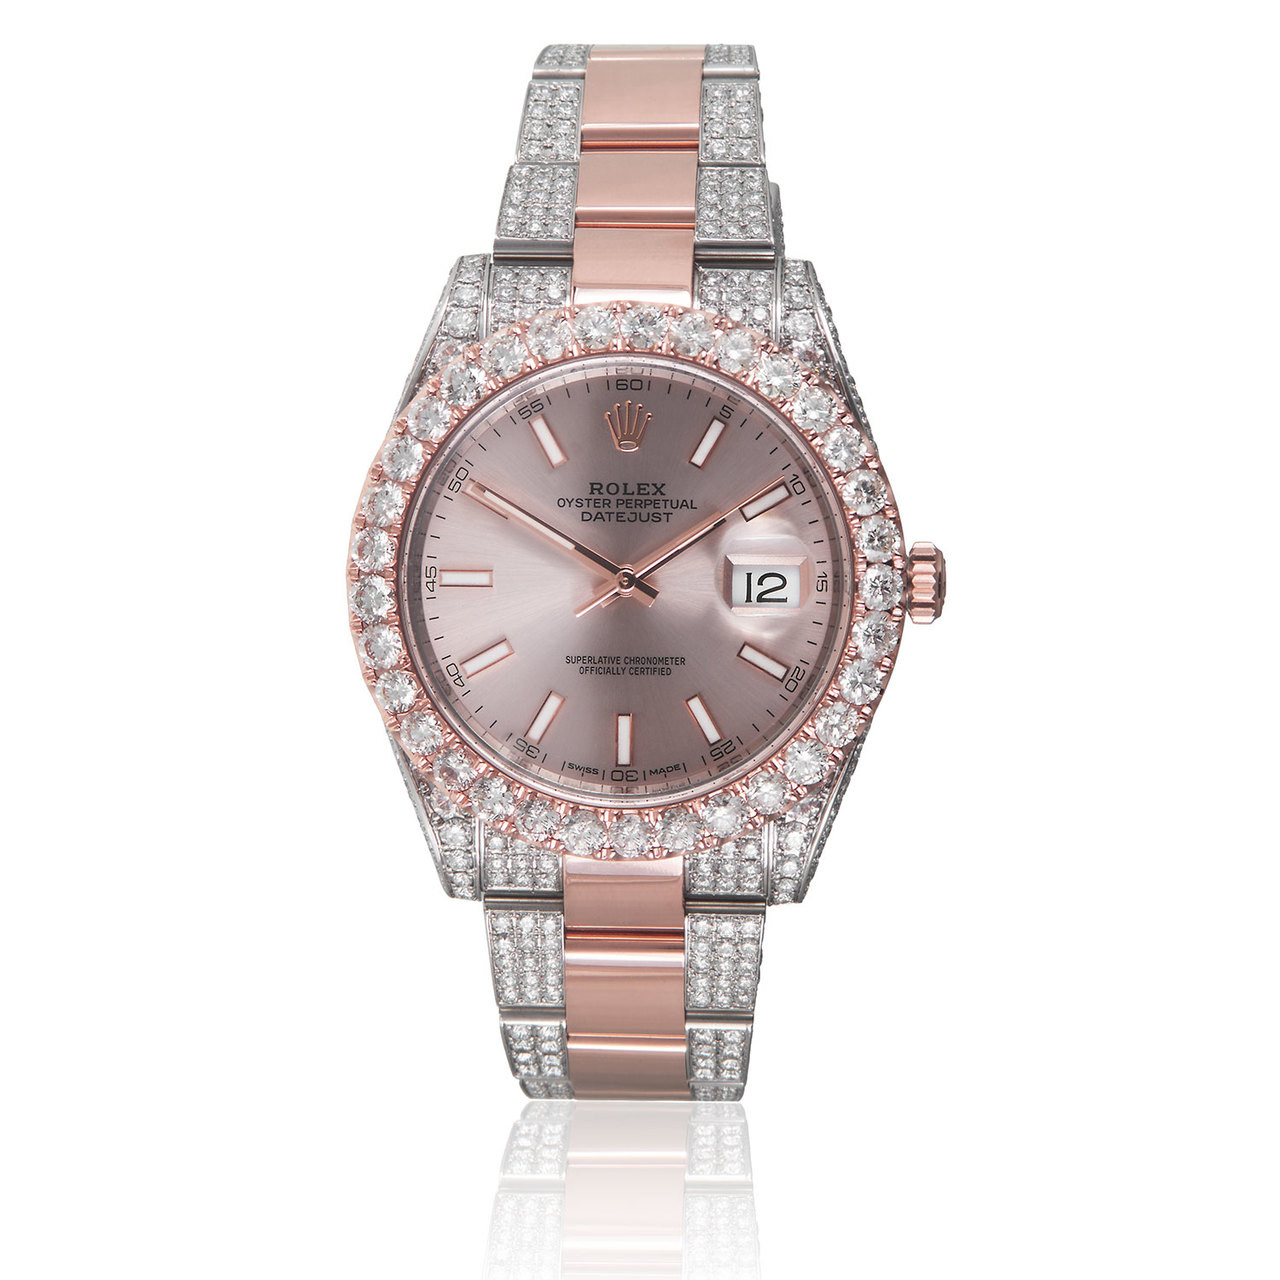 Rolex Two,Tone DateJust 41mm 17ct Diamond Bezel Automatic Men\u0027s Watch